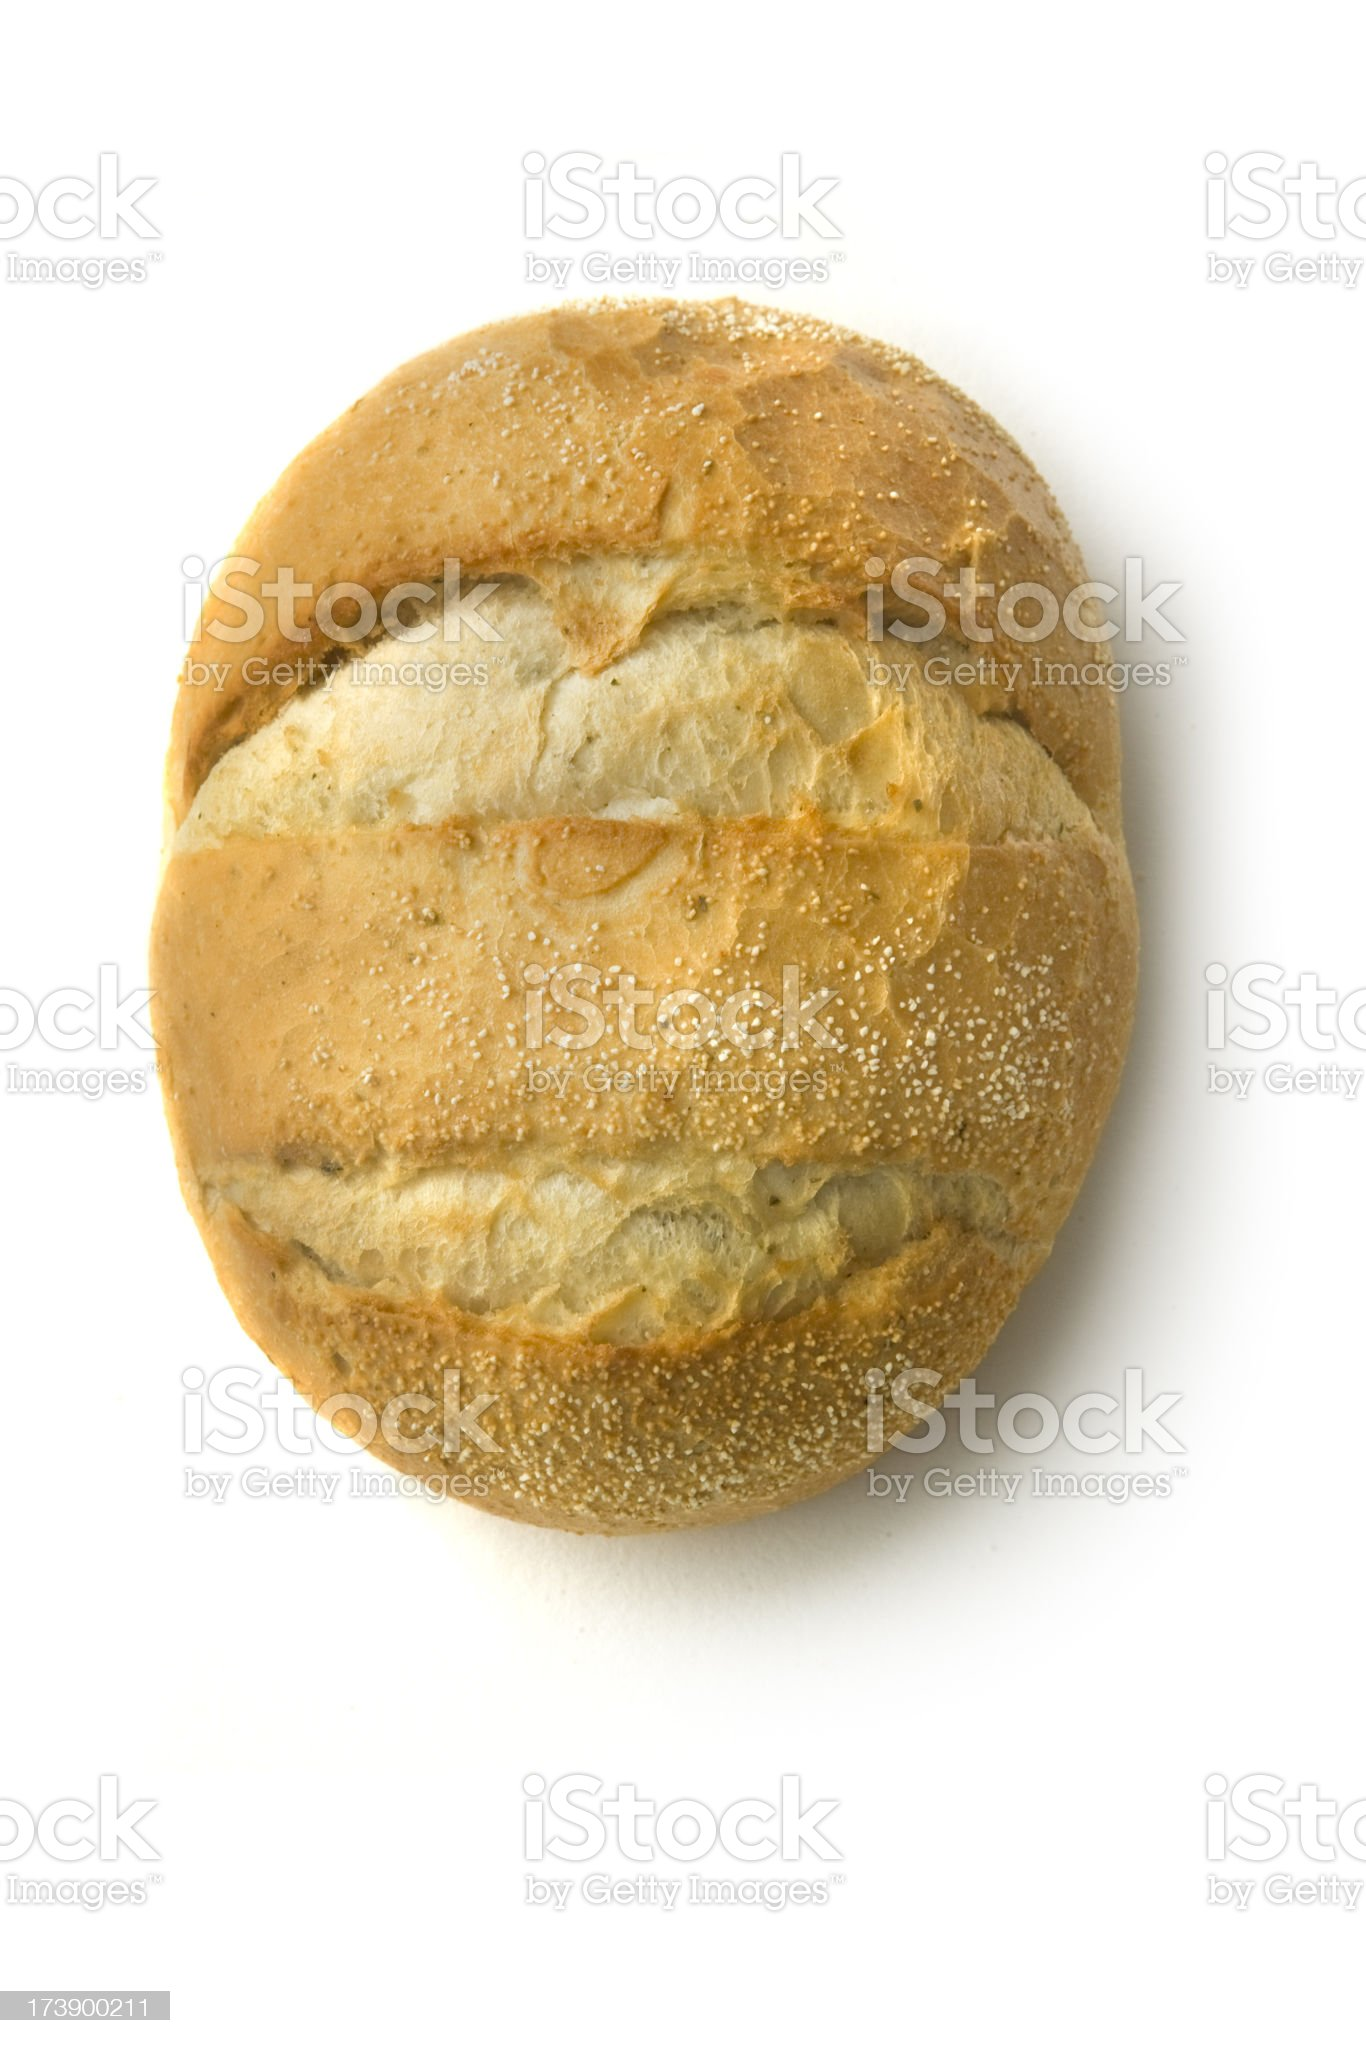 Bread: White Bread Roll Isolated on White Background royalty-free stock photo